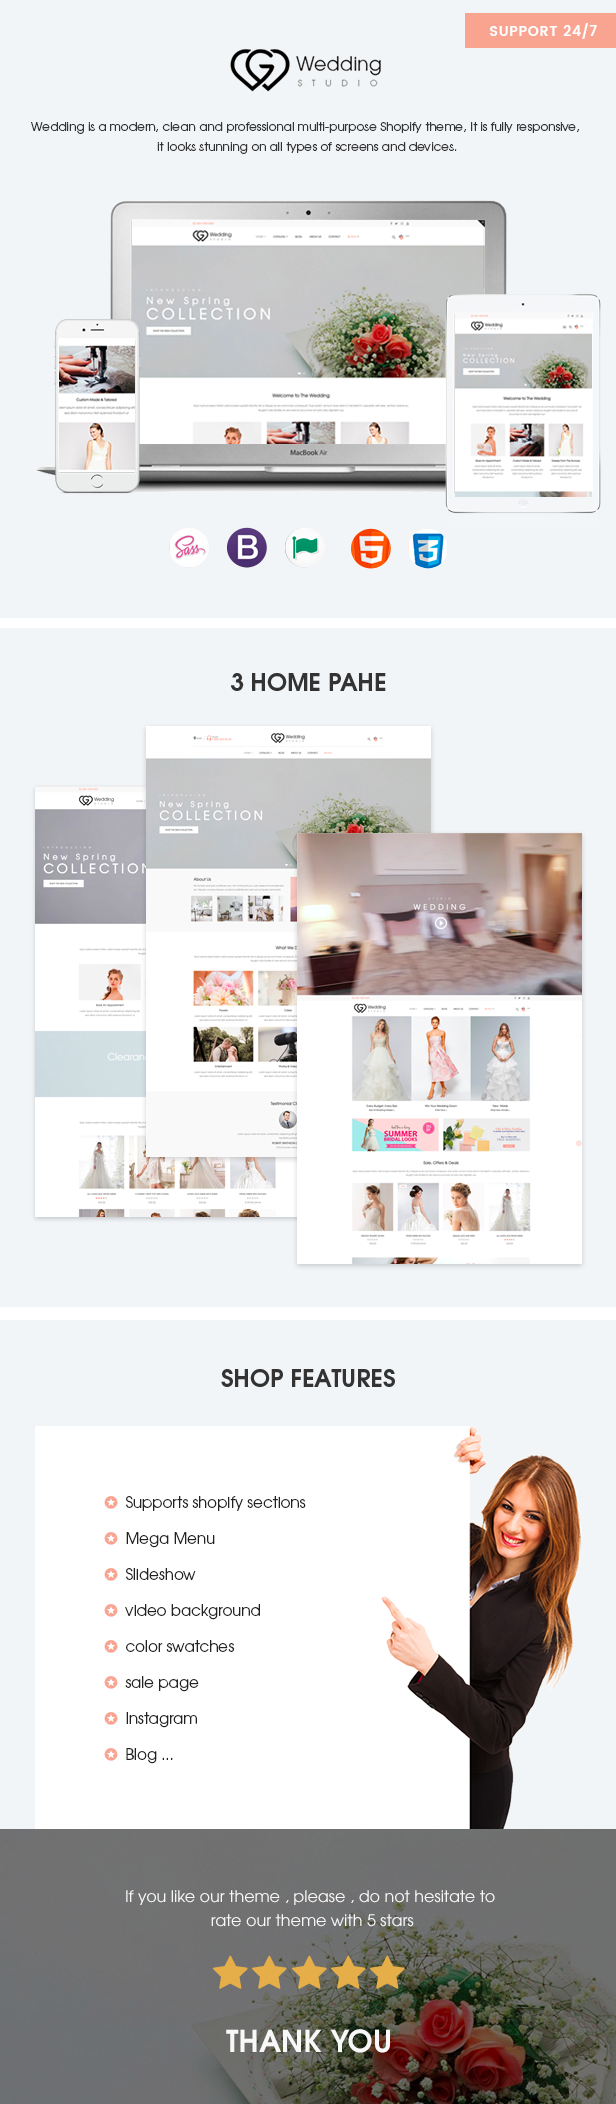 Wedding – Responsive Shopify theme FULL FEATURE List